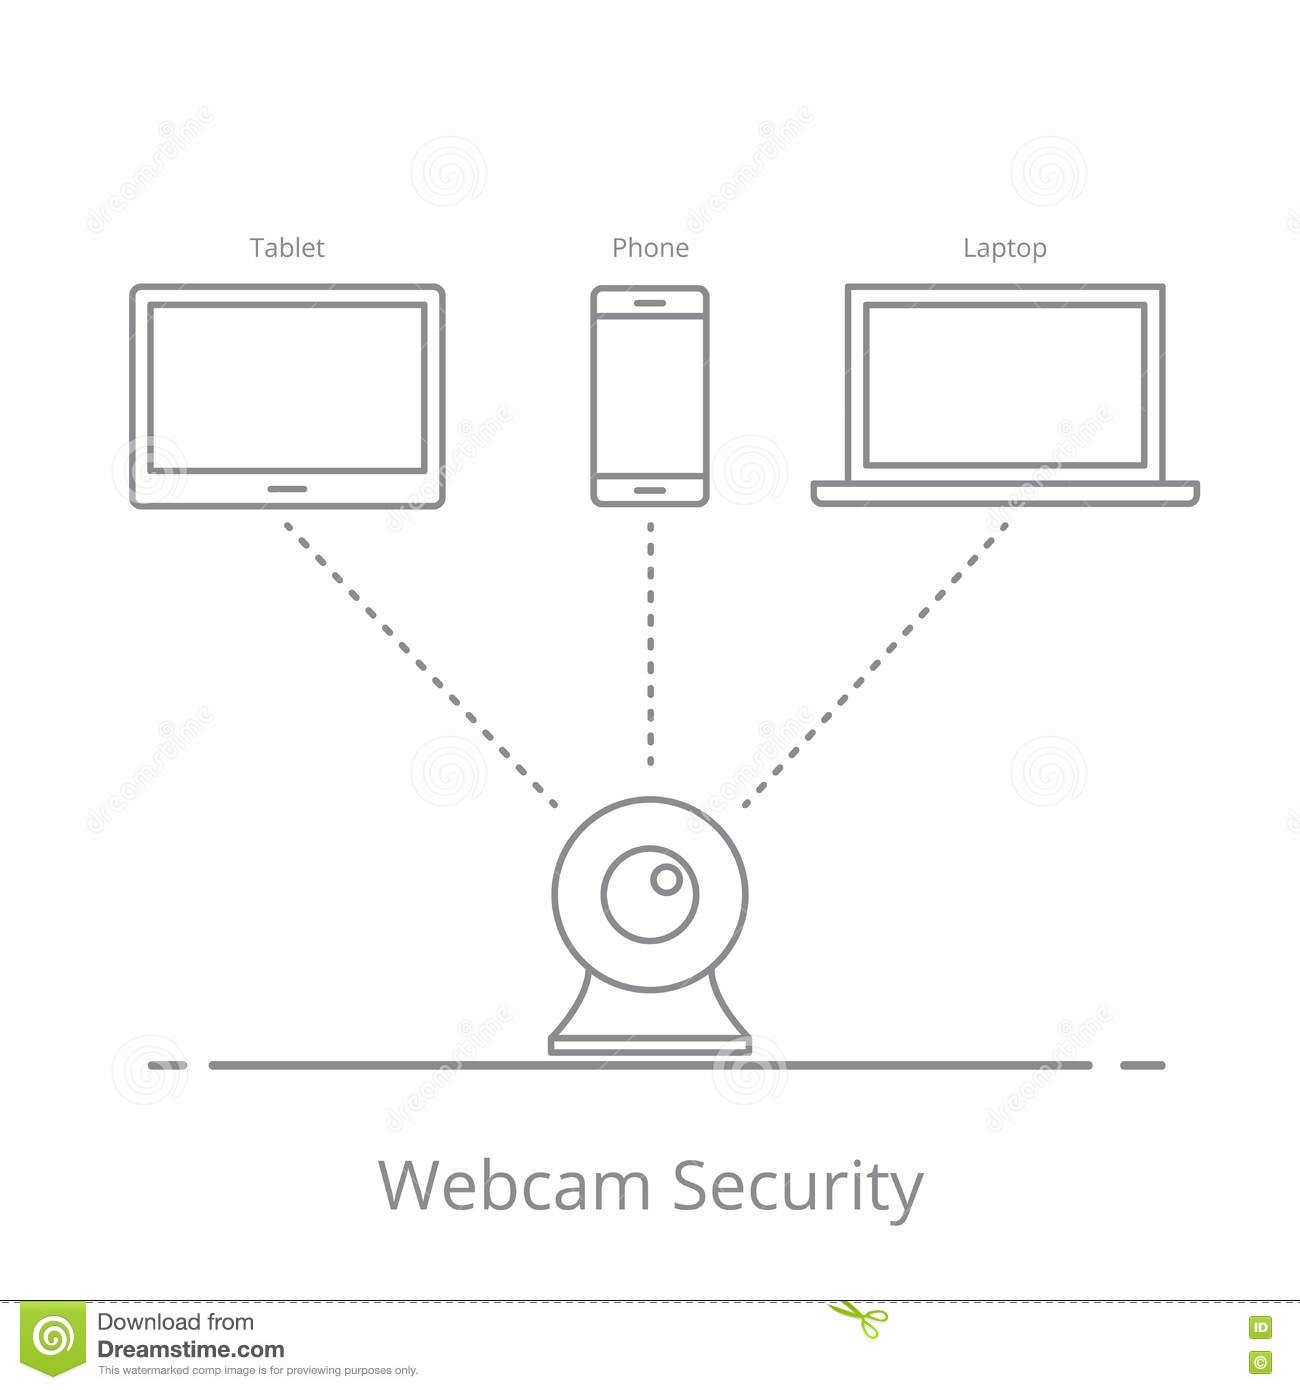 Concept Of Observation Via A Web Camera On Your Mobile Devices Phone Wire Wiring Diagram Security Video System